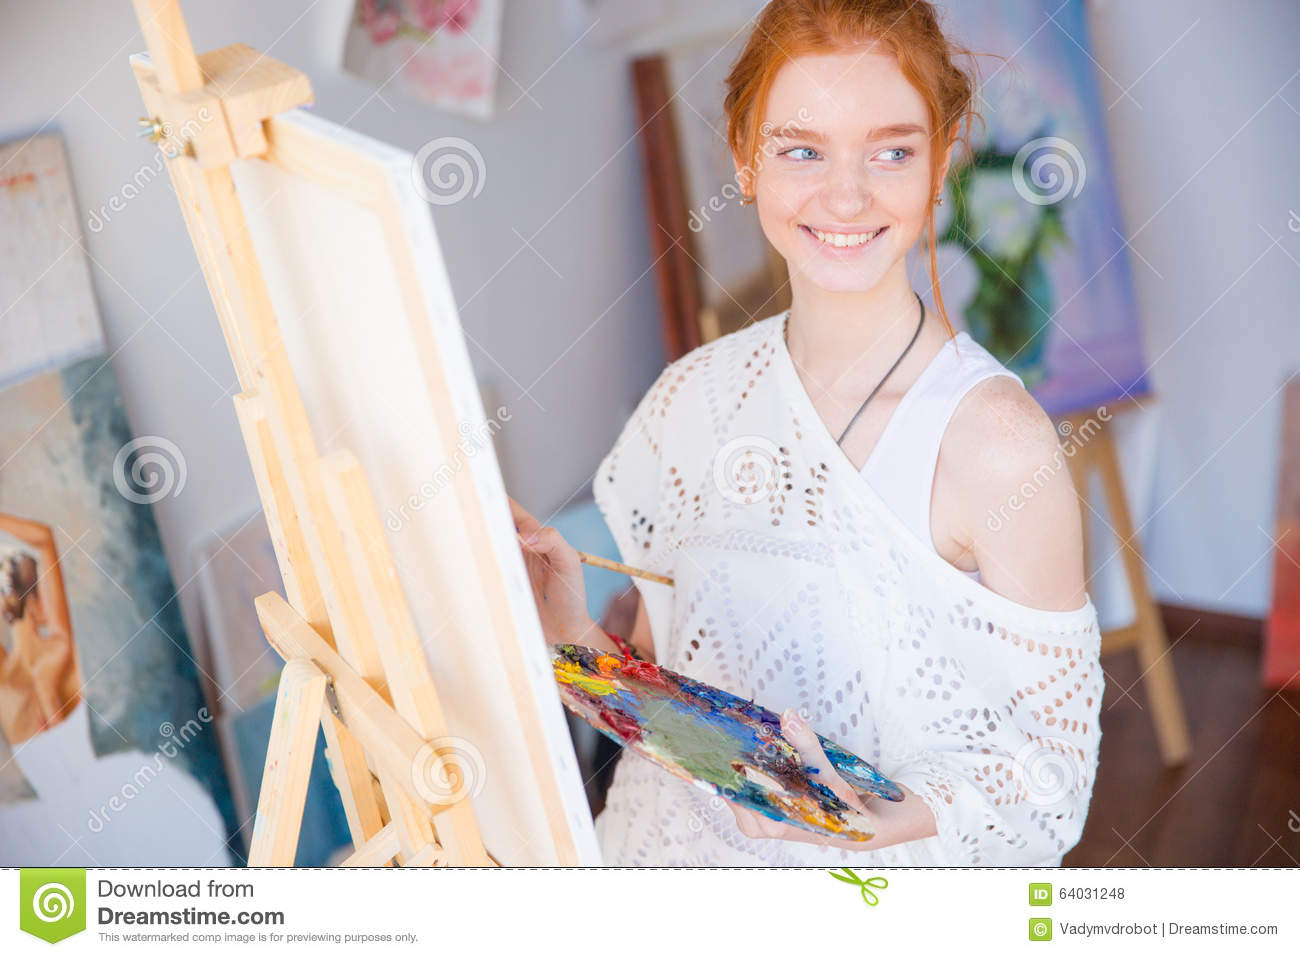 Download Woman Painter Holding Palette With Oil Paints In Art Studio Stock Photo - Image of class, hobby: 64031248